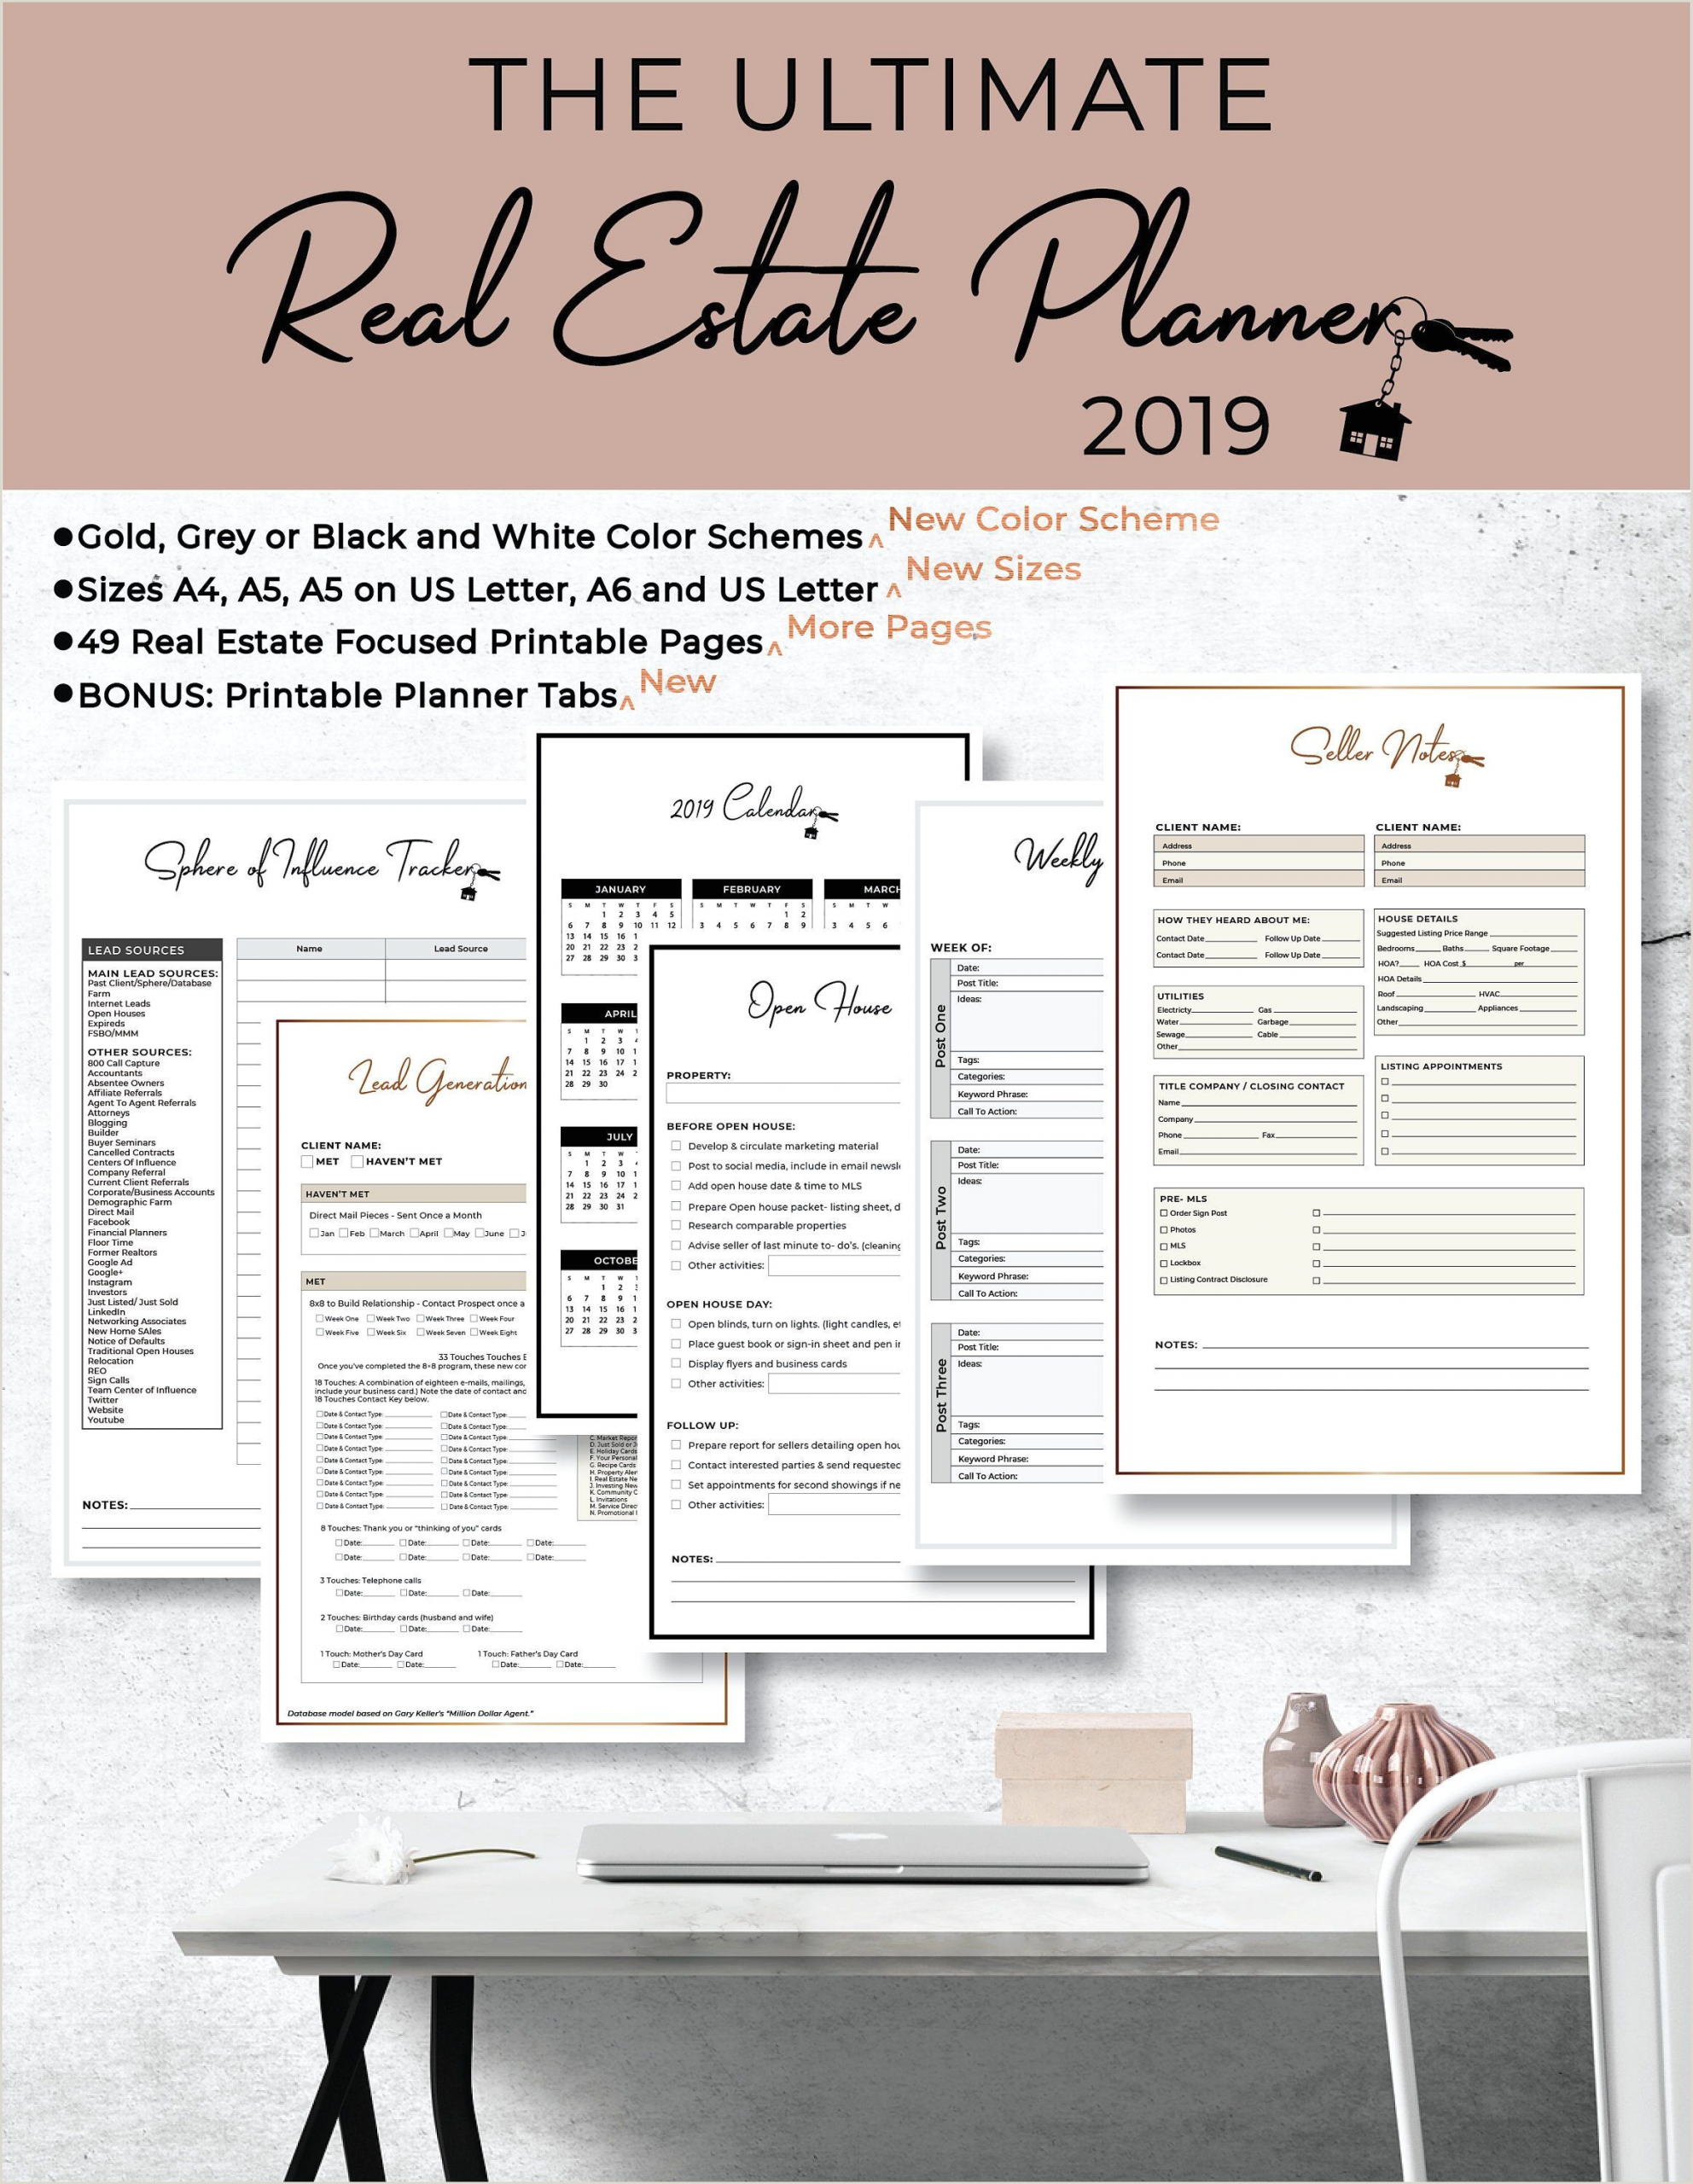 Real Estate Card Ideas Ultimate 2020 2021 Real Estate Business Planner Instant